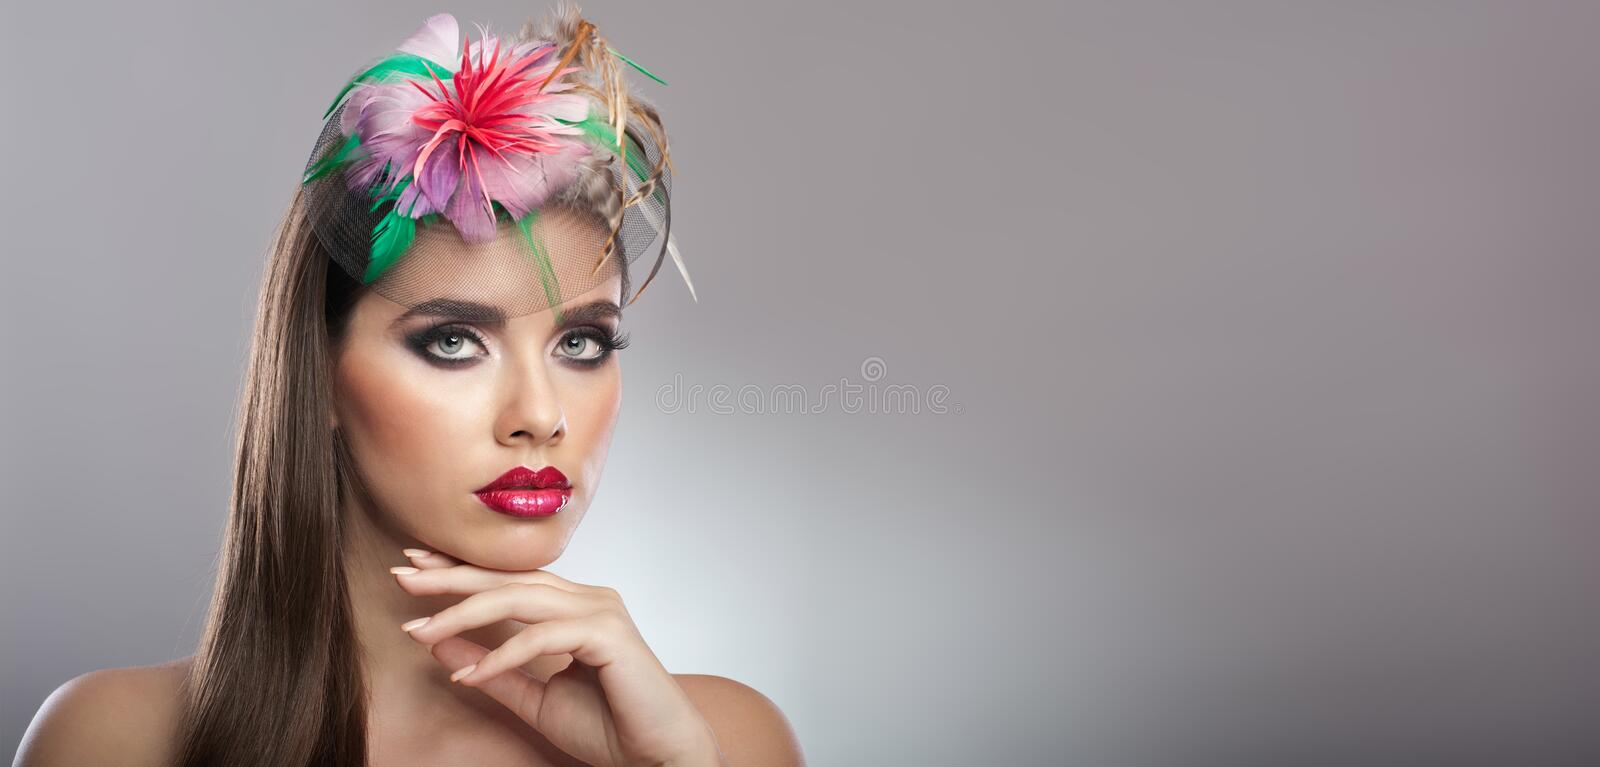 Hairstyle and Make up - beautiful genuine natural brunette with colored flowers in her long hair. Art portrait royalty free stock photo